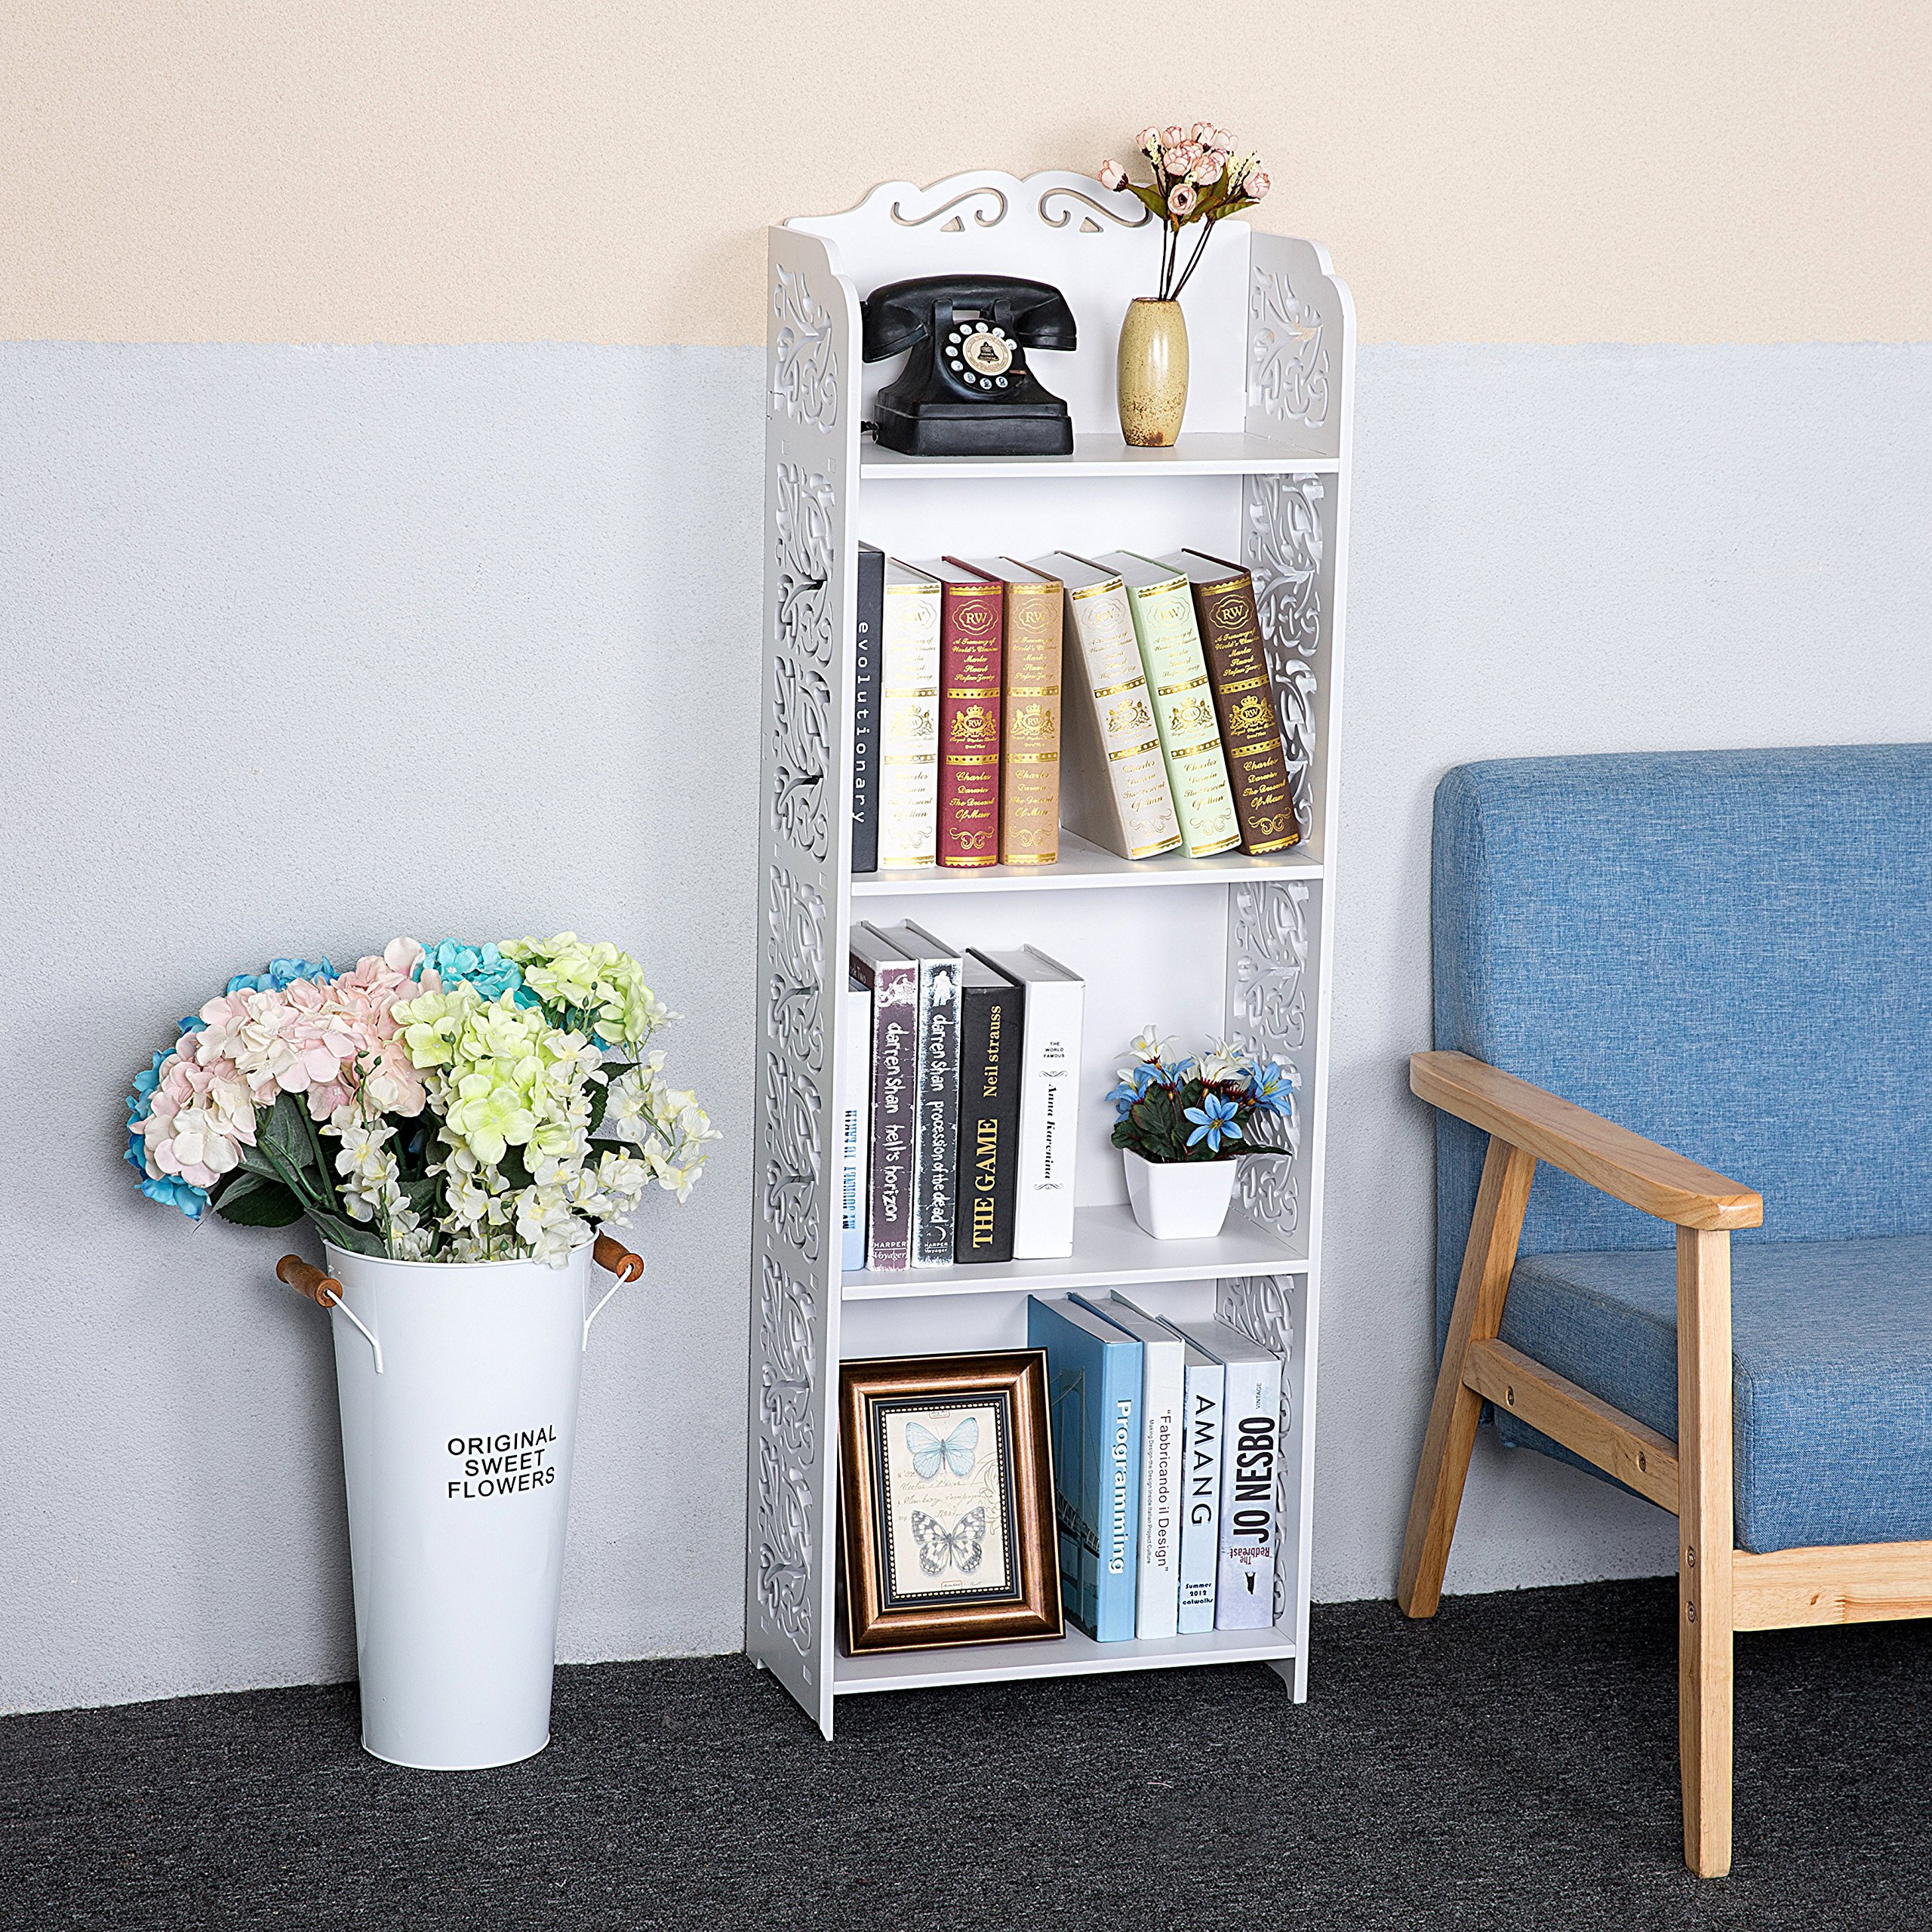 C&AHOME 4 Tier DIY Storage Rack Portable Bathroom Shelf Organizer Shoe Rack Bookcase, White